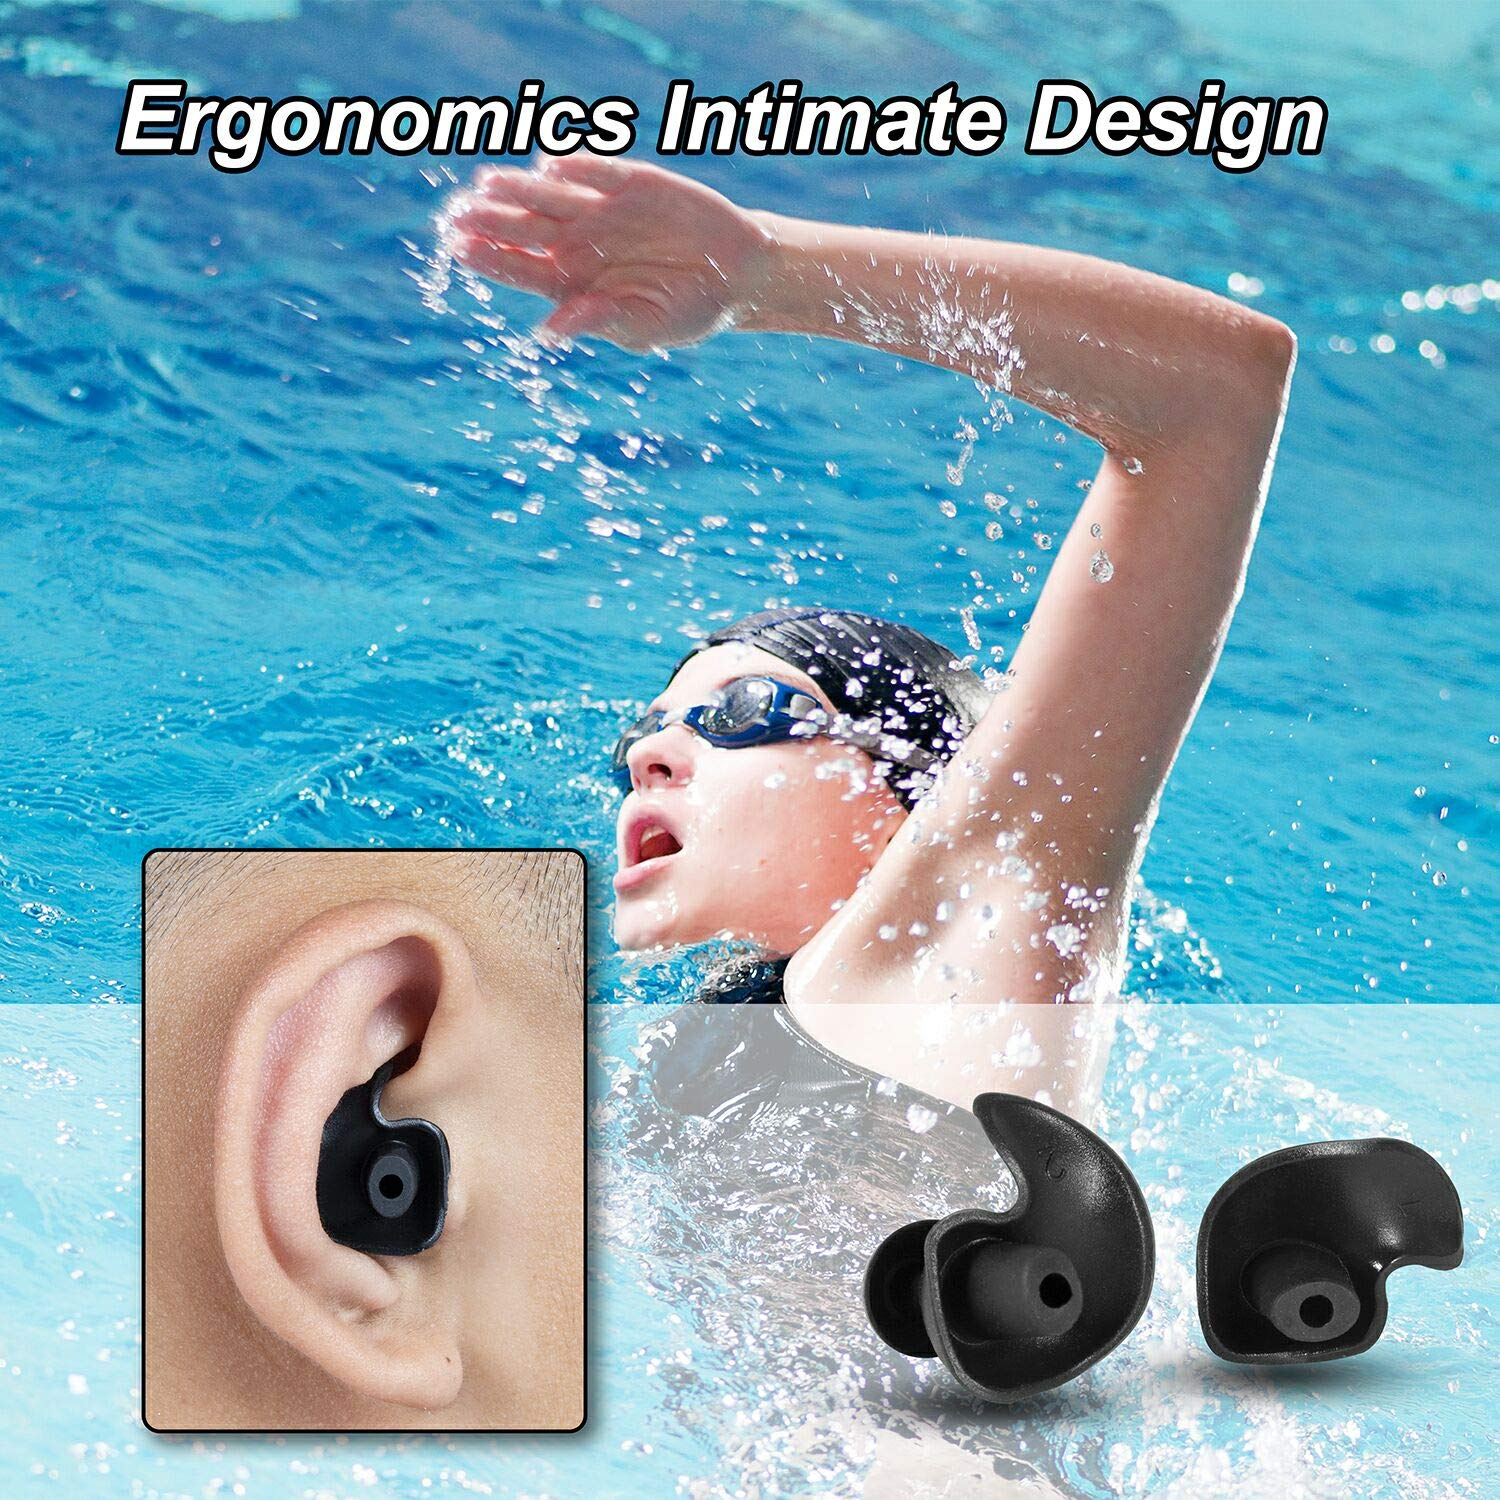 8 Pairs, 4 Colors 8 Pairs Swimming Earplugs Silicone Ear Plugs Reusable Waterproof for Swimming Showering Bathing Surfing Snorkeling and Other Water Sports Adults Size